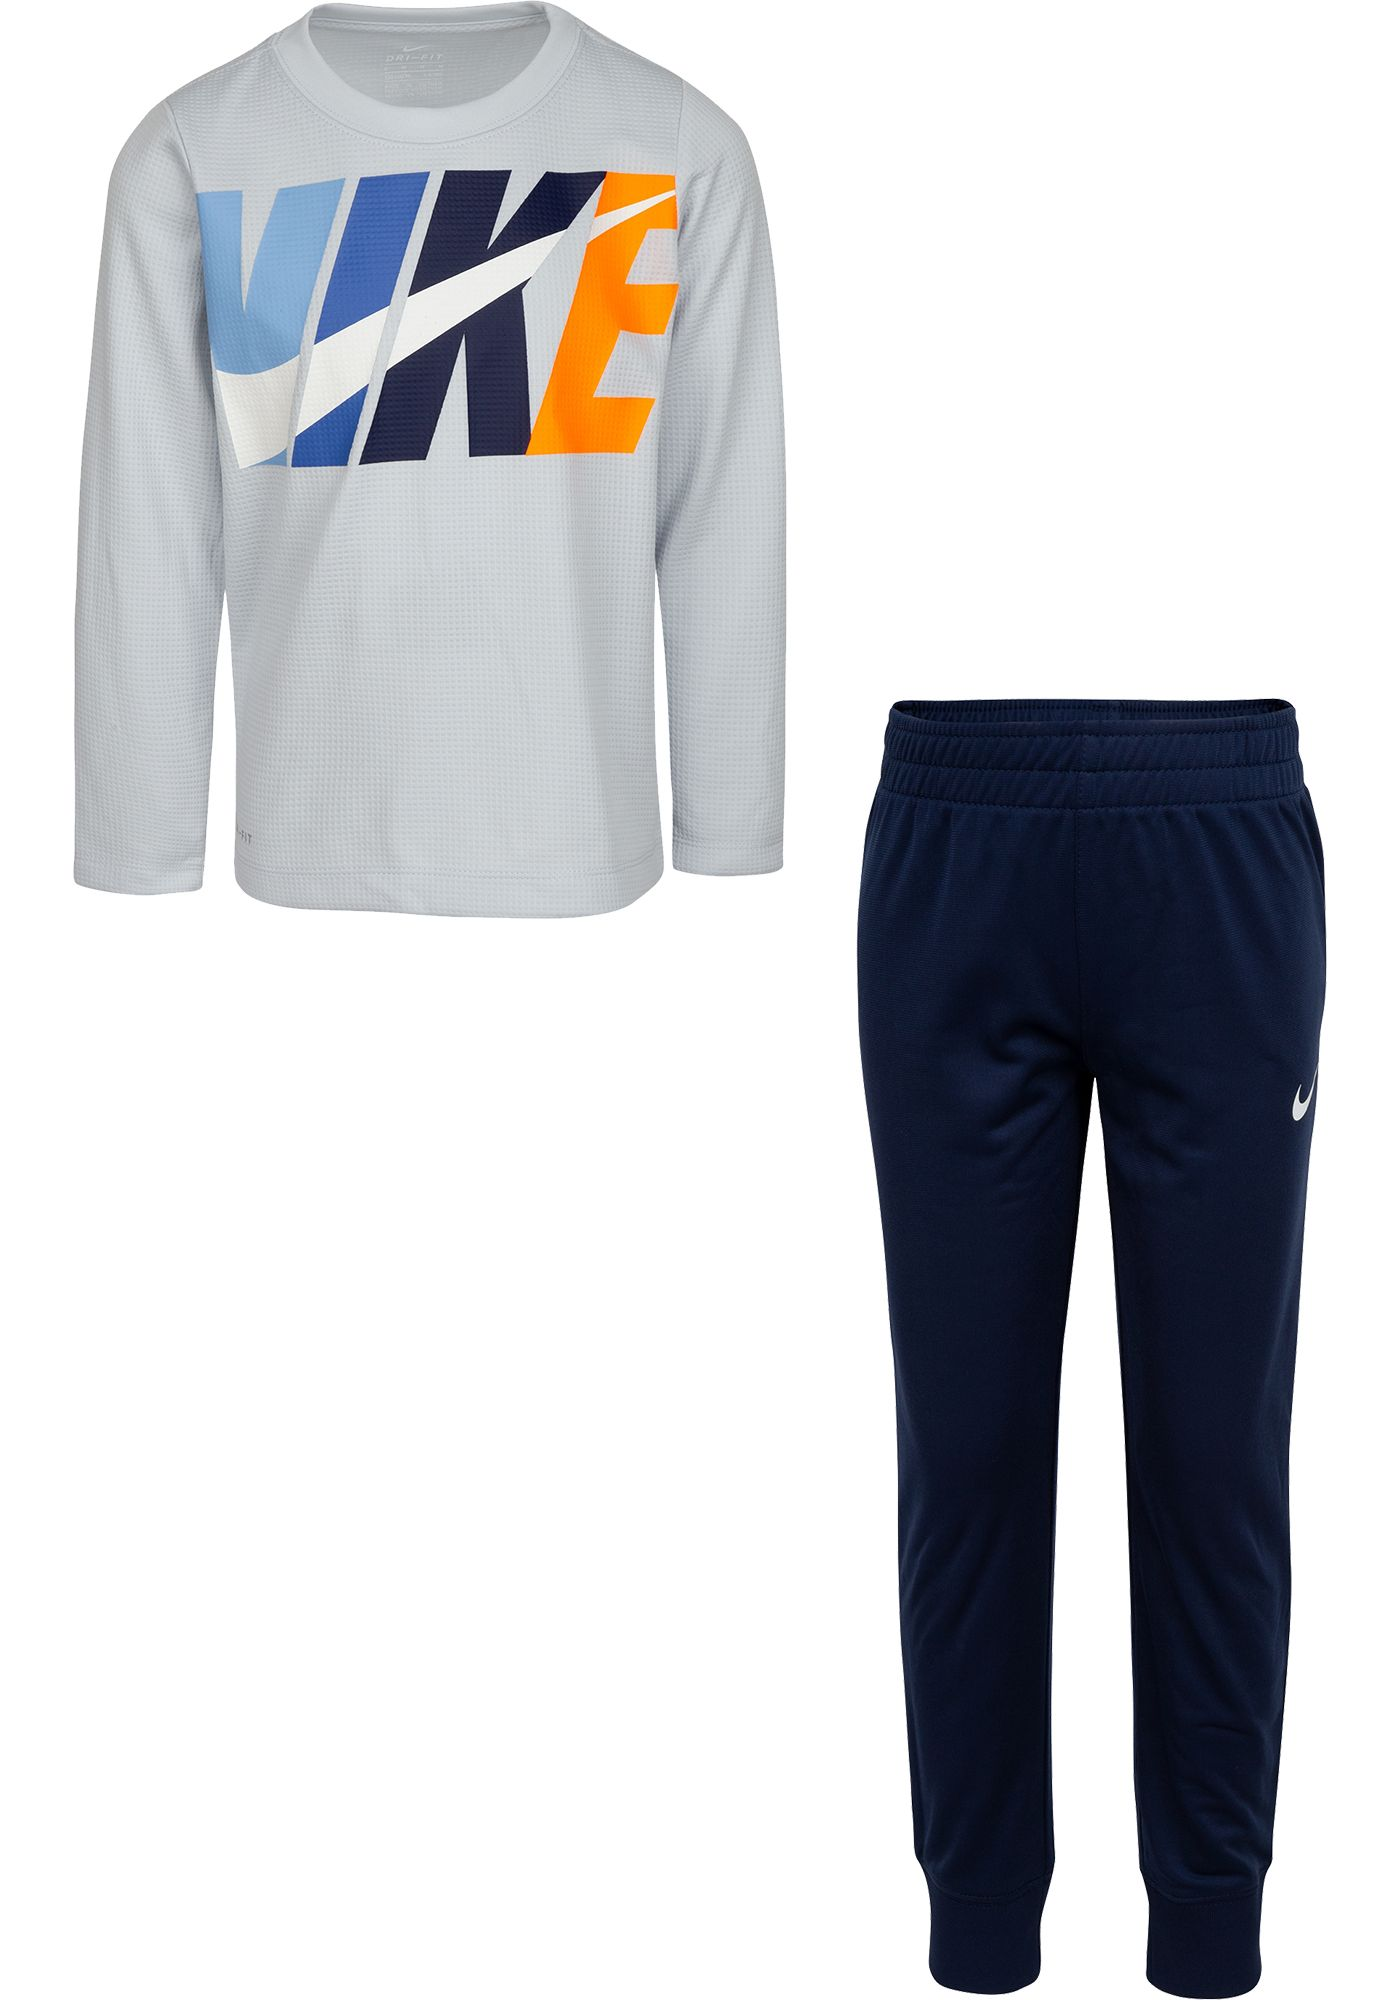 Nike Little Boys' Dri-FIT Thermal Long Sleeve Shirt and Jogger Set